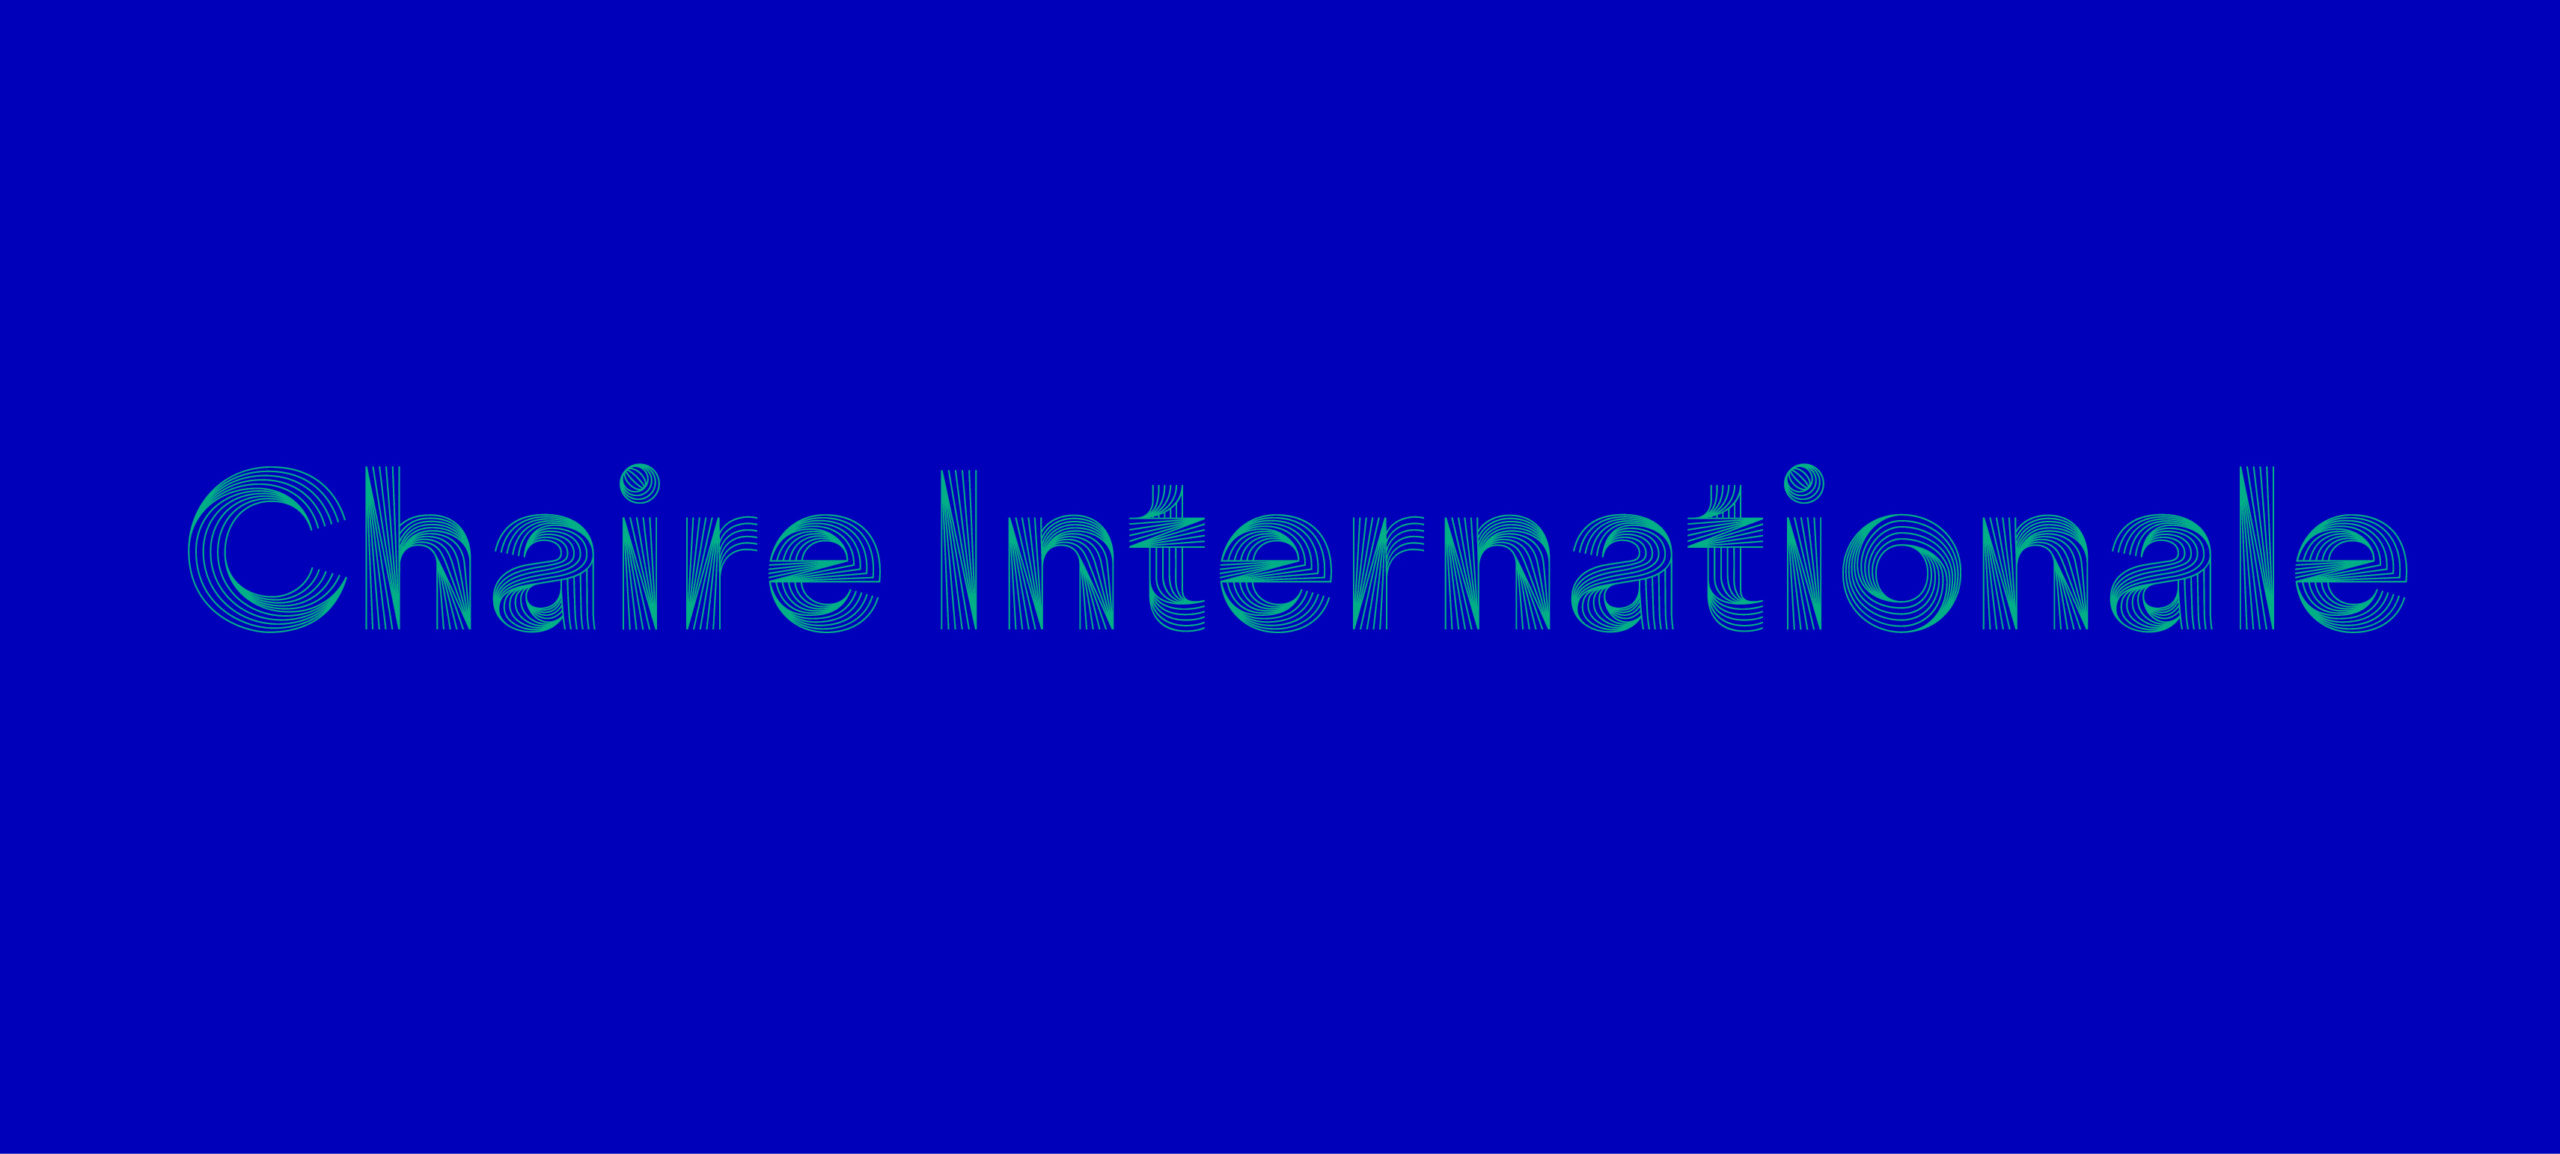 Chaires internationales 2021-2022